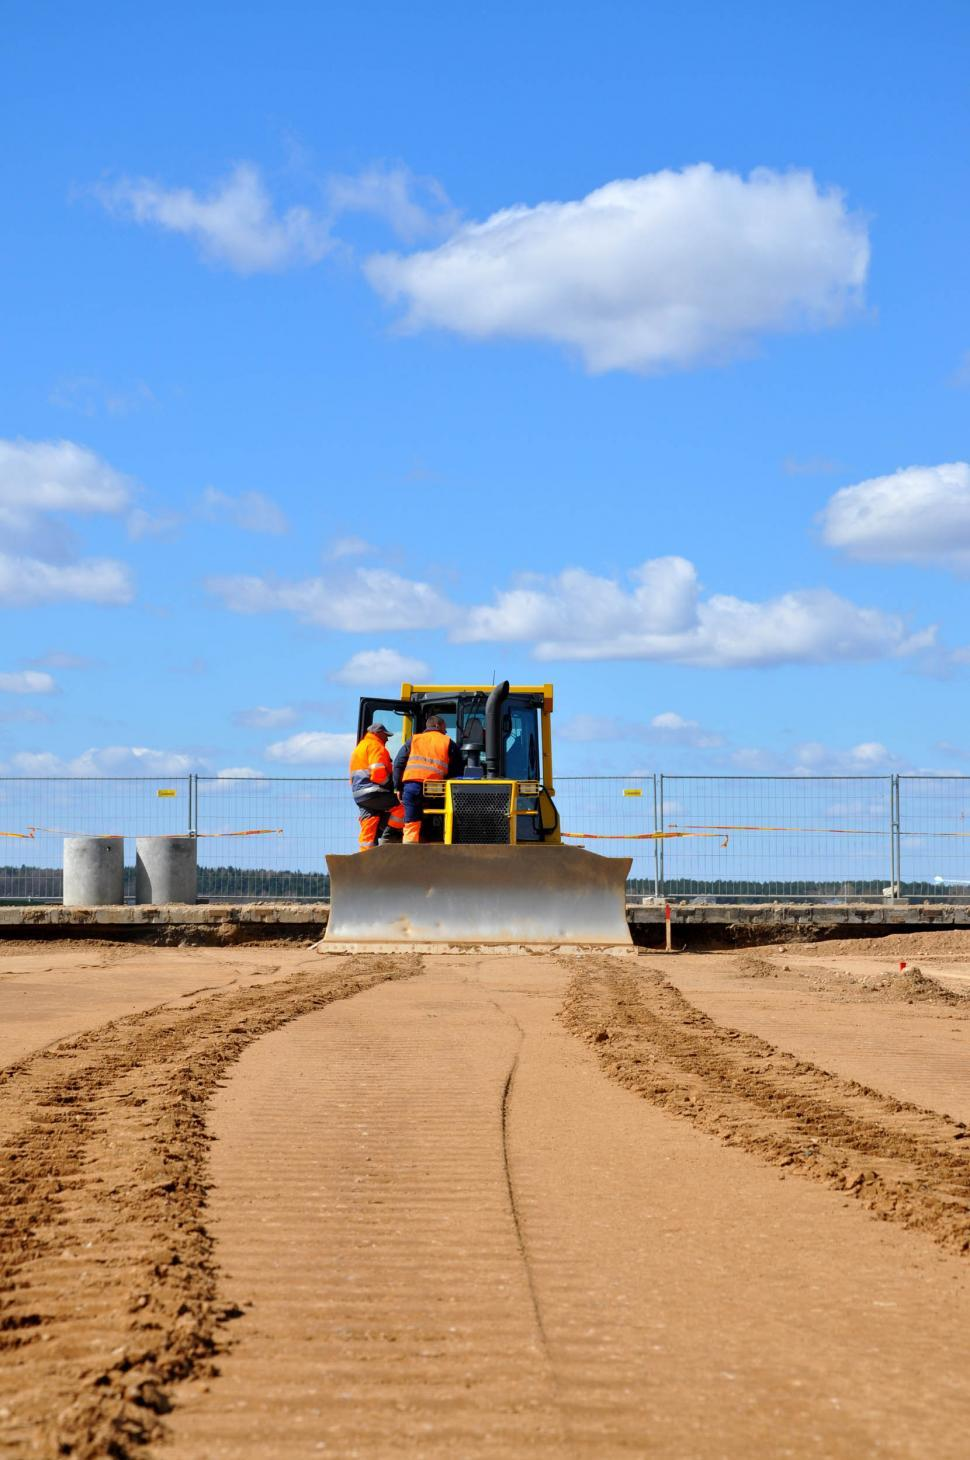 Download Free Stock Photo of Bulldozer and blue sky